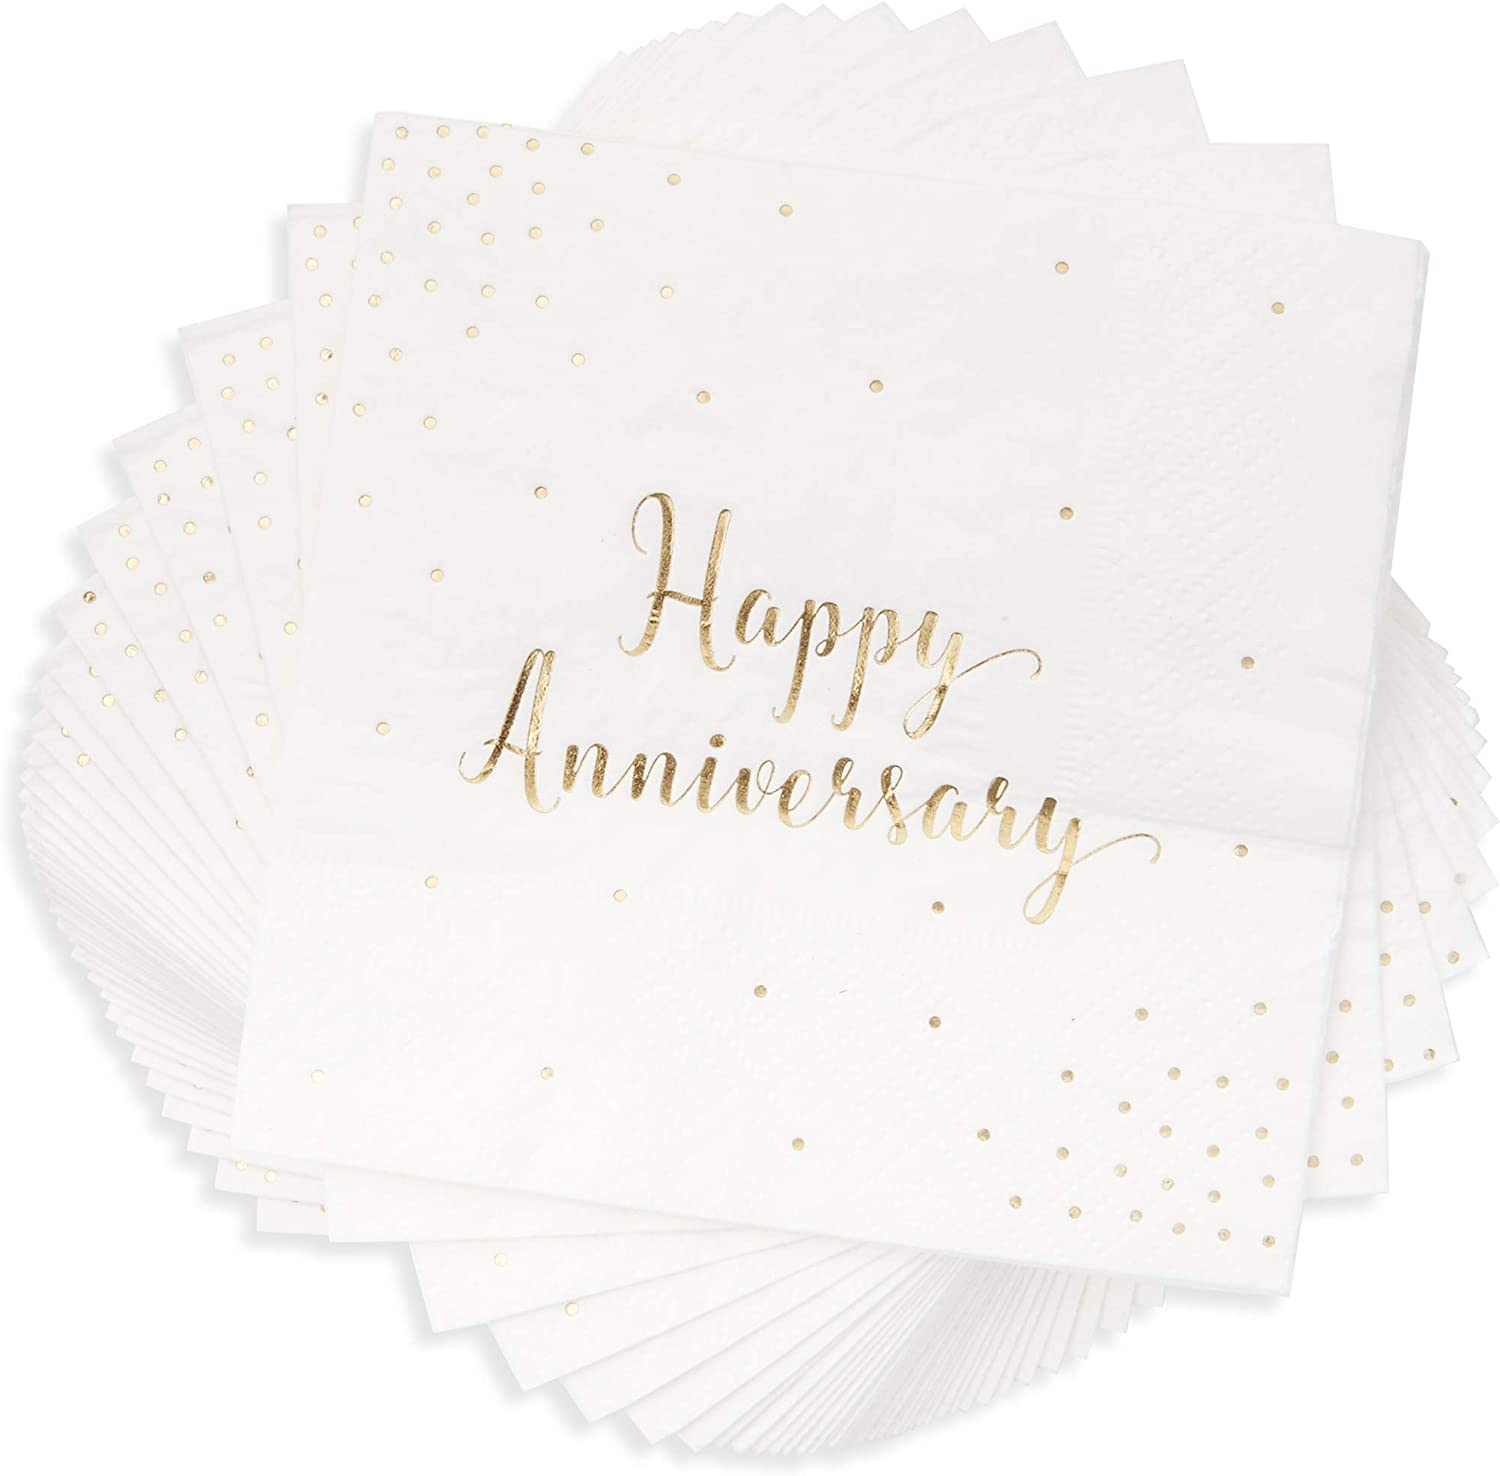 Blue Panda Anniversary Party Supplies, Cocktail Napkins (5 x 5 in, Gold Foil, 50-Pack)